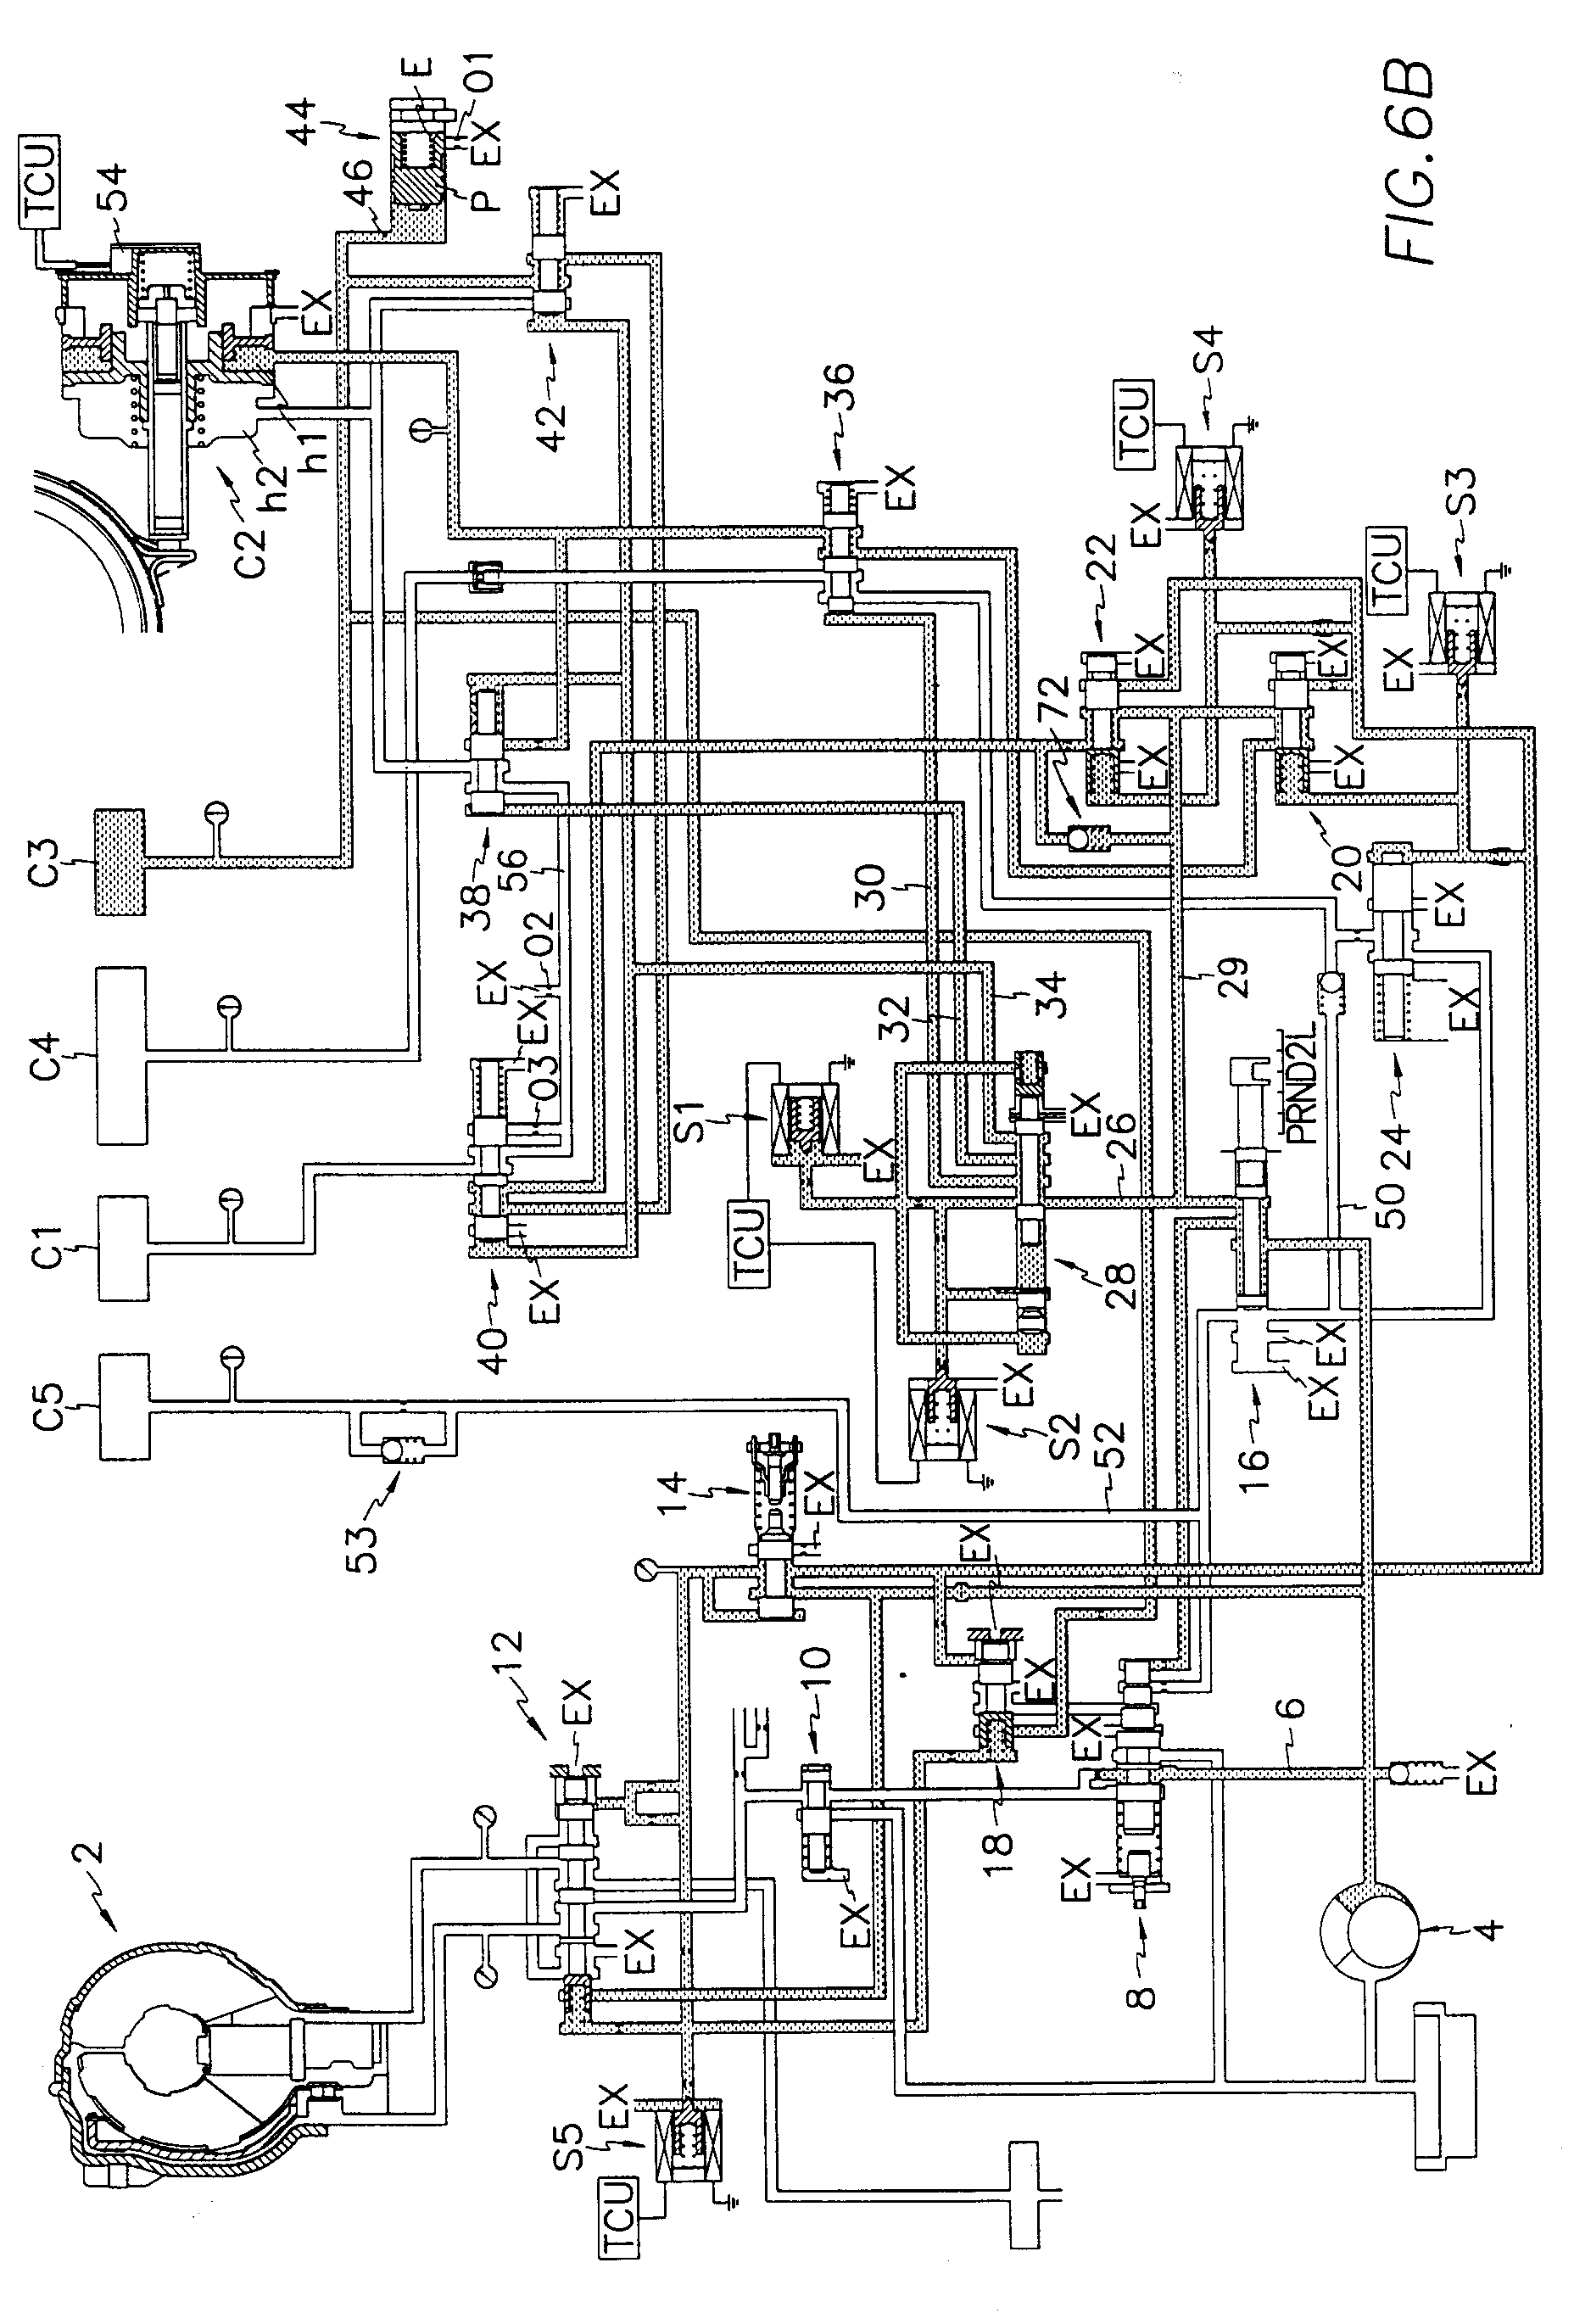 Ford Upfitter Switch Wiring Diagram. Ford. Auto Wiring Diagram